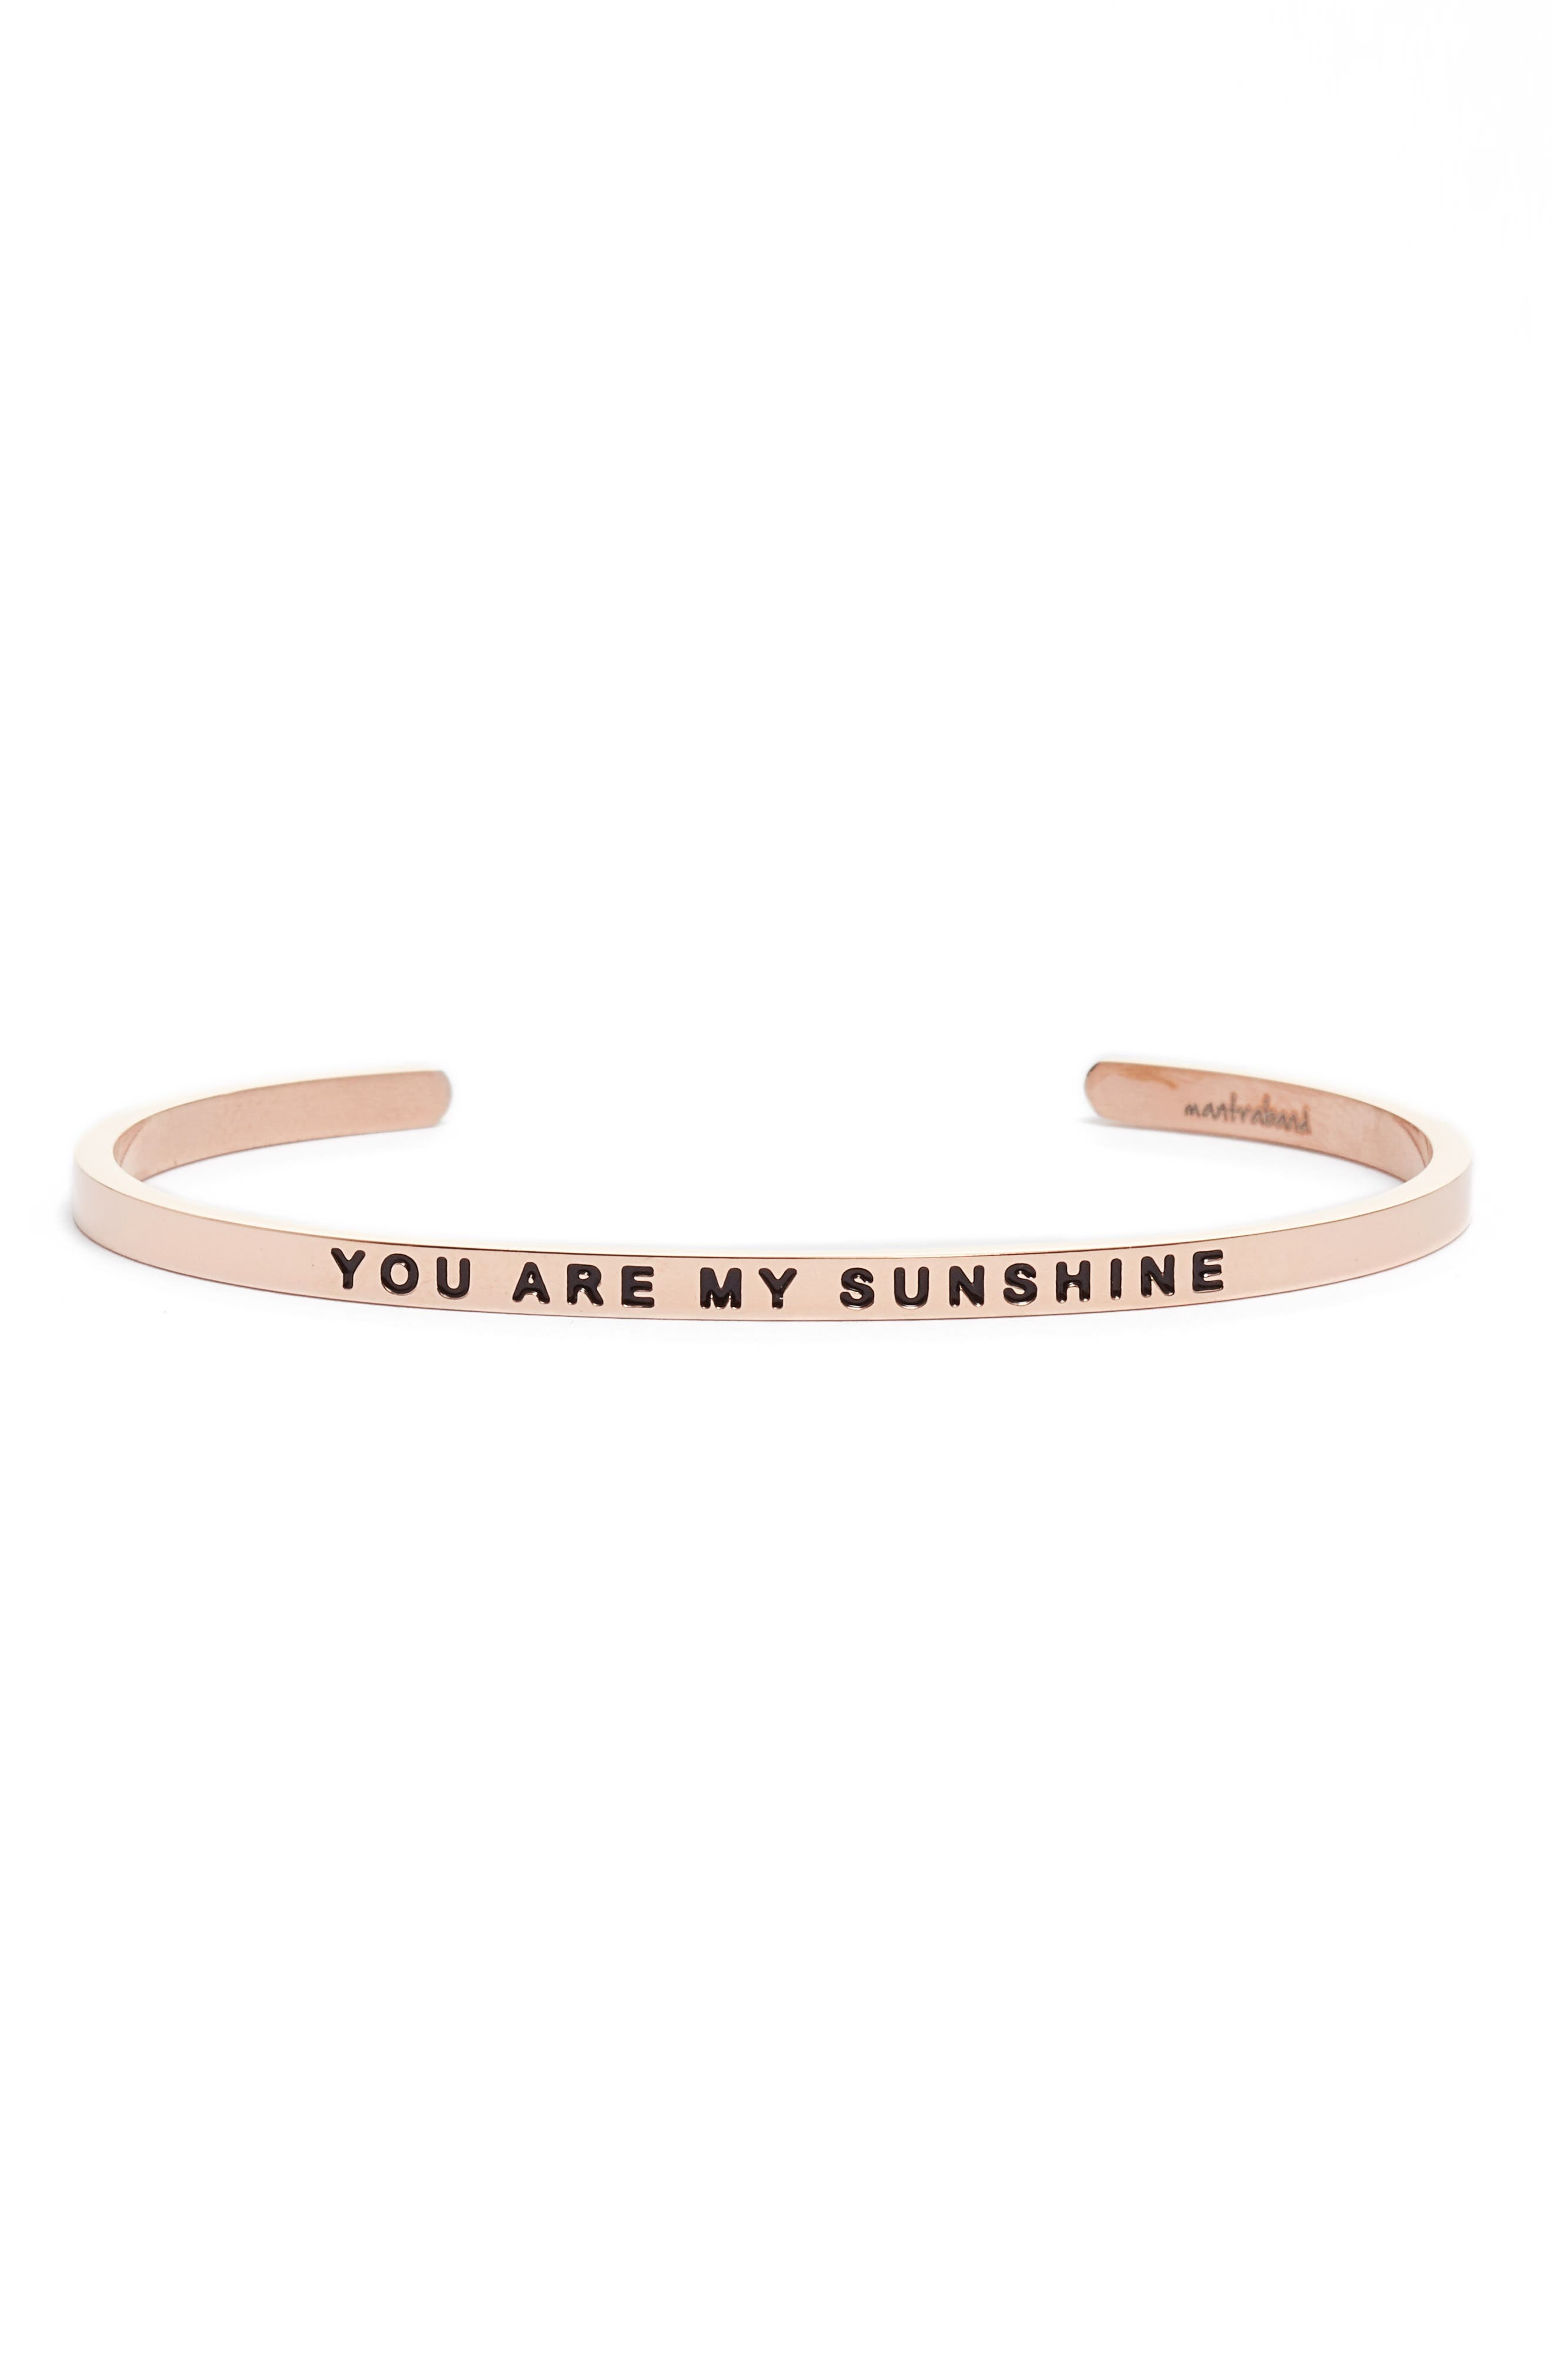 Alternate Image 1 Selected - MantraBand You Are My Sunshine Engraved Cuff